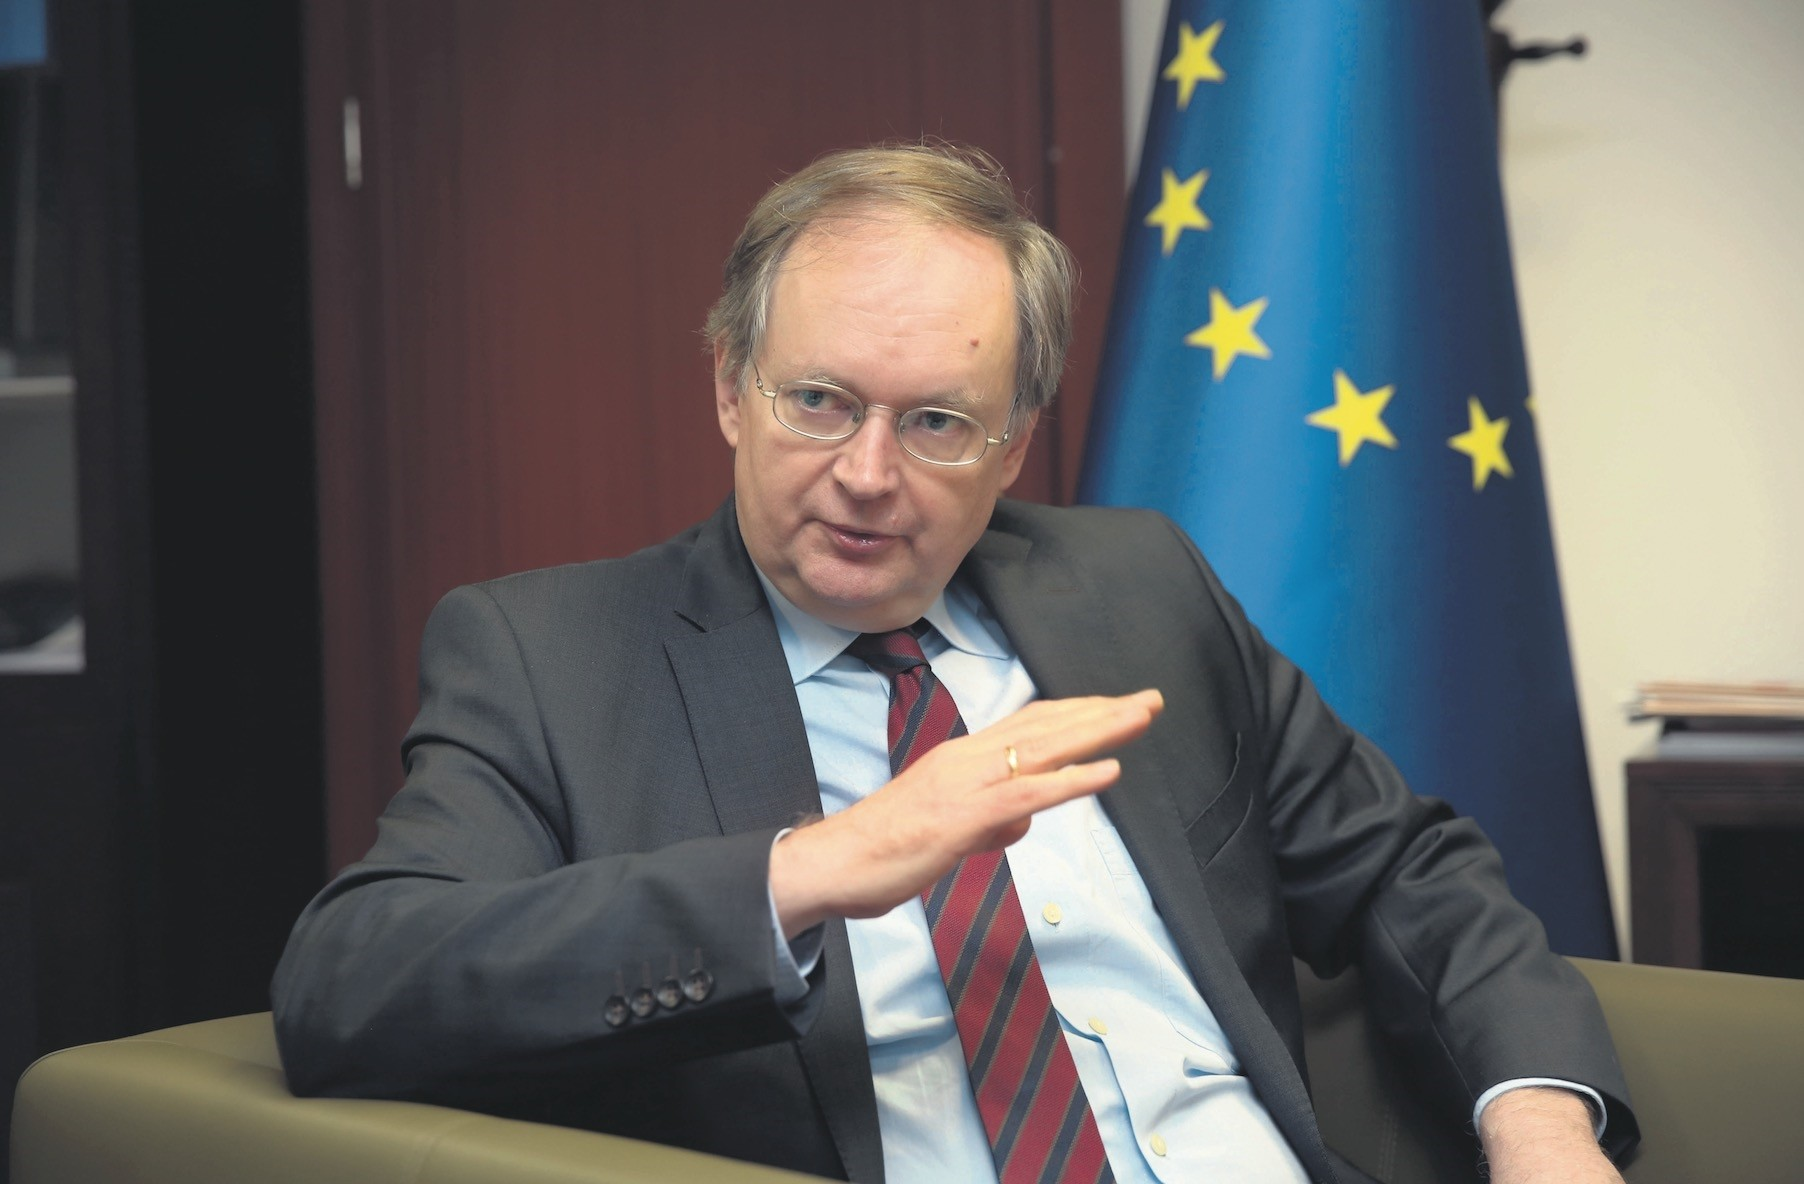 EU-Turkey Delegation Head Berger said the engagement, which began last May is helping to rebuild confidence between Turkey and the EU, which encourages both sides to tackle disagreements.